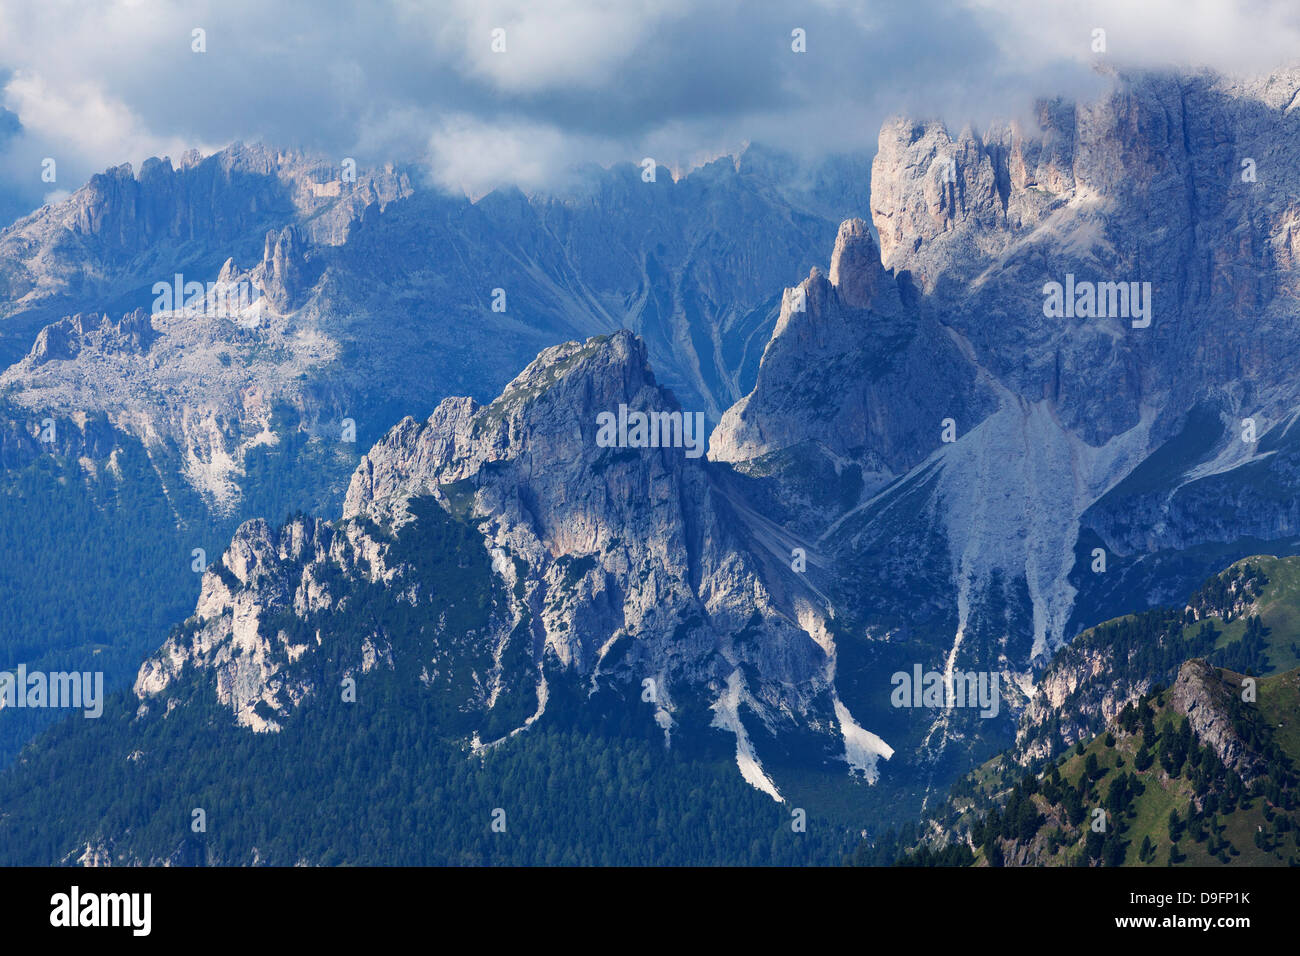 The rugged Rosengarten Peaks in the Dolomites near Canazei, Trentino-Alto Adige, Italy - Stock Image